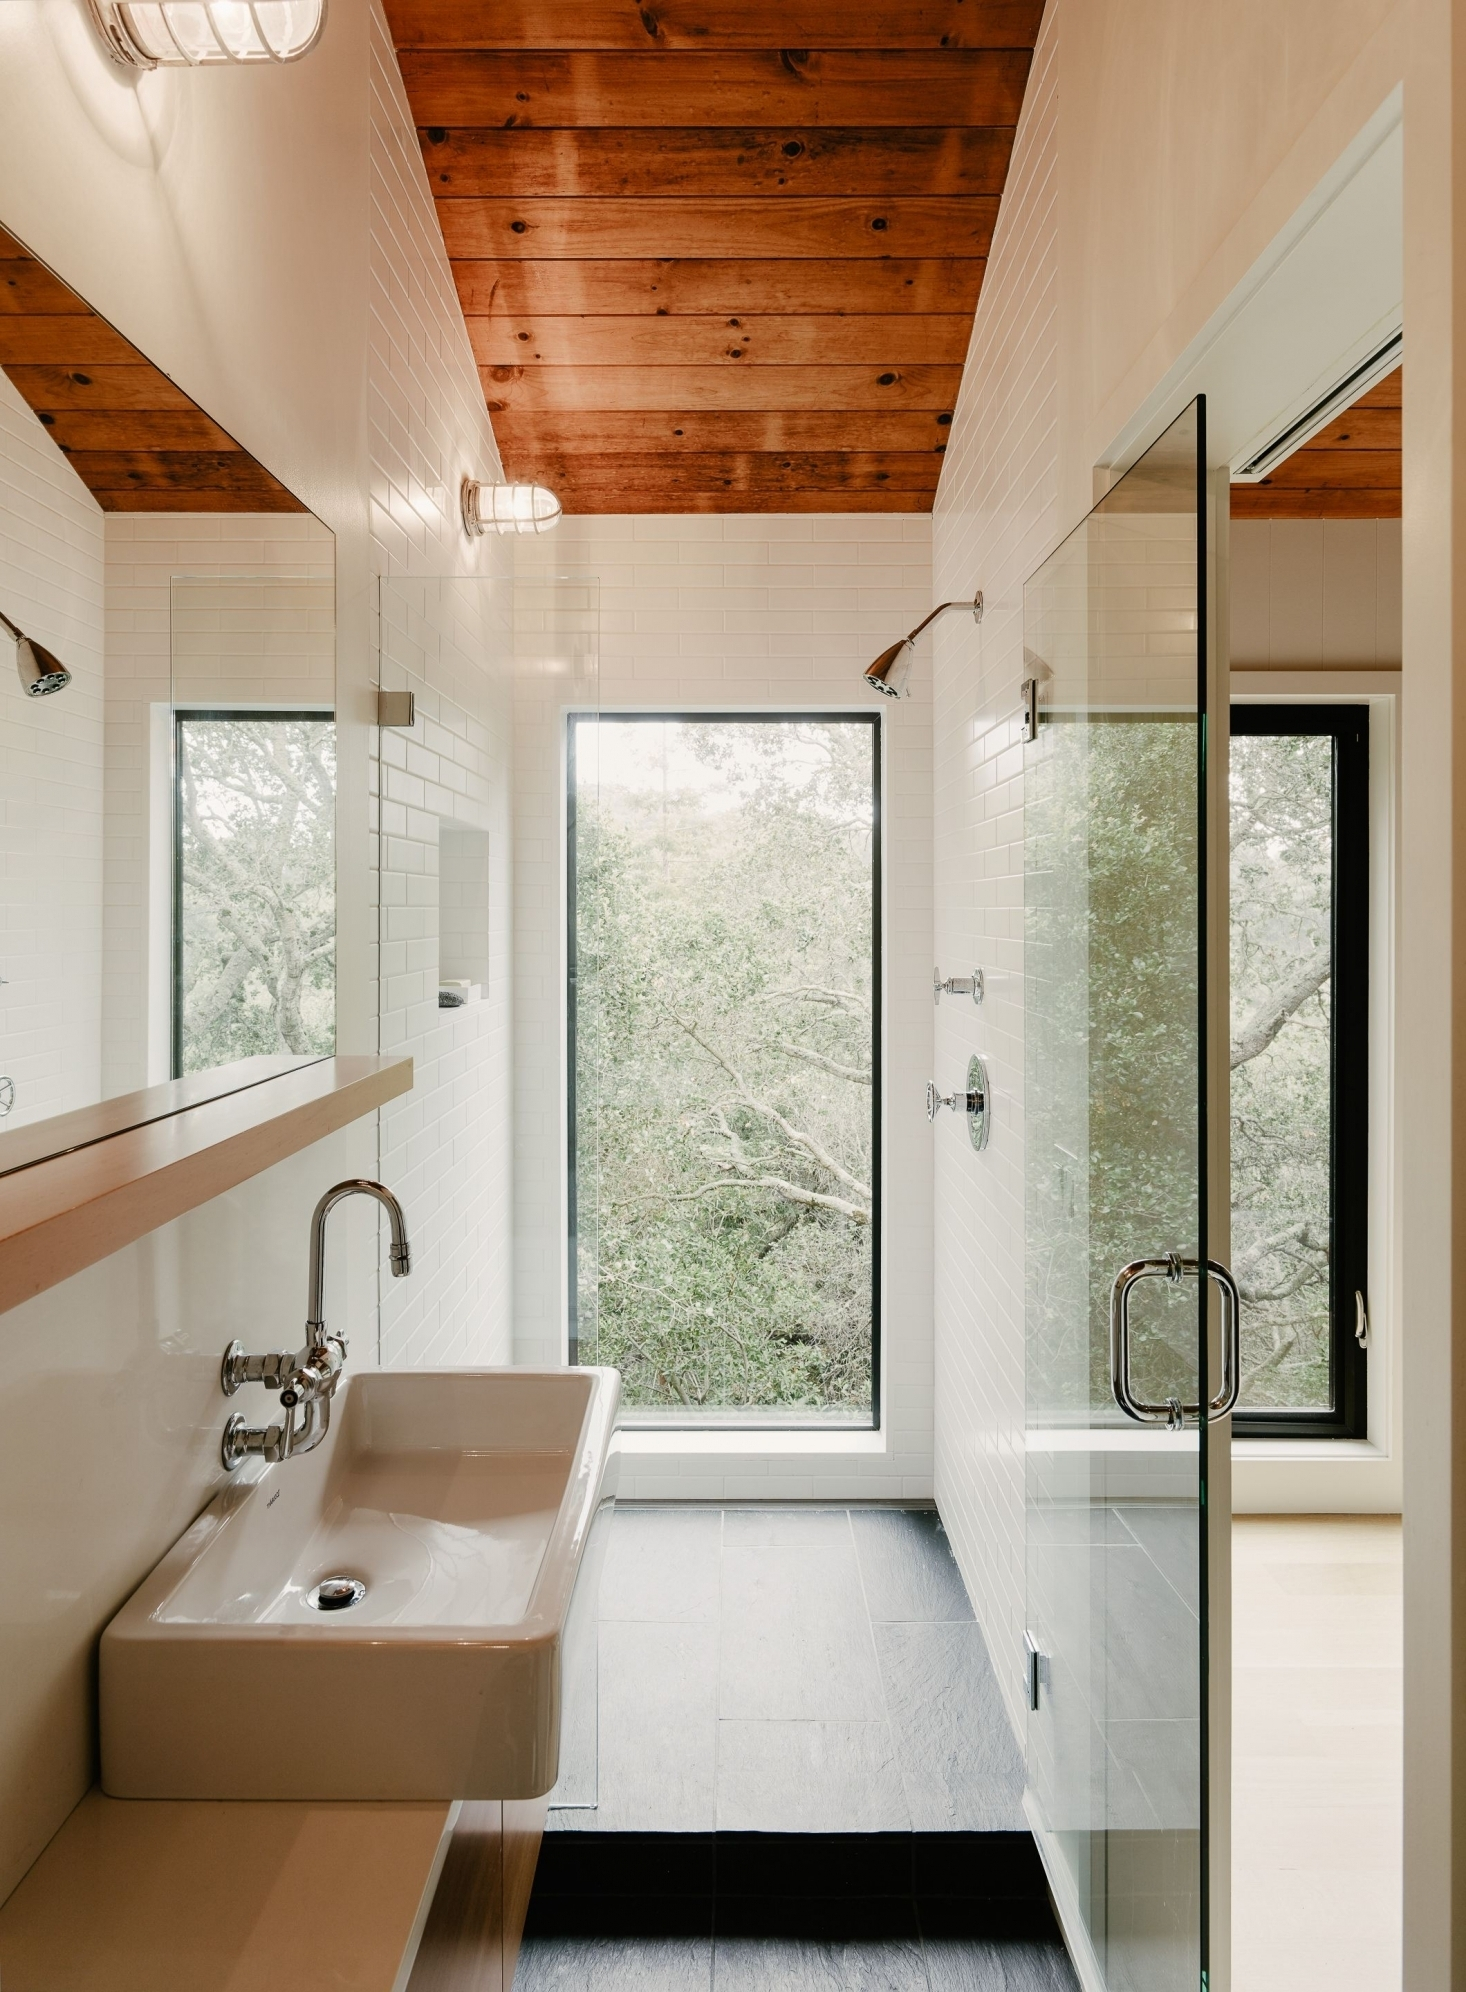 Expert Advice: 10 Essential Tips For Designing The Bathroom 10+ Pitched Roof Bathroom Ideas